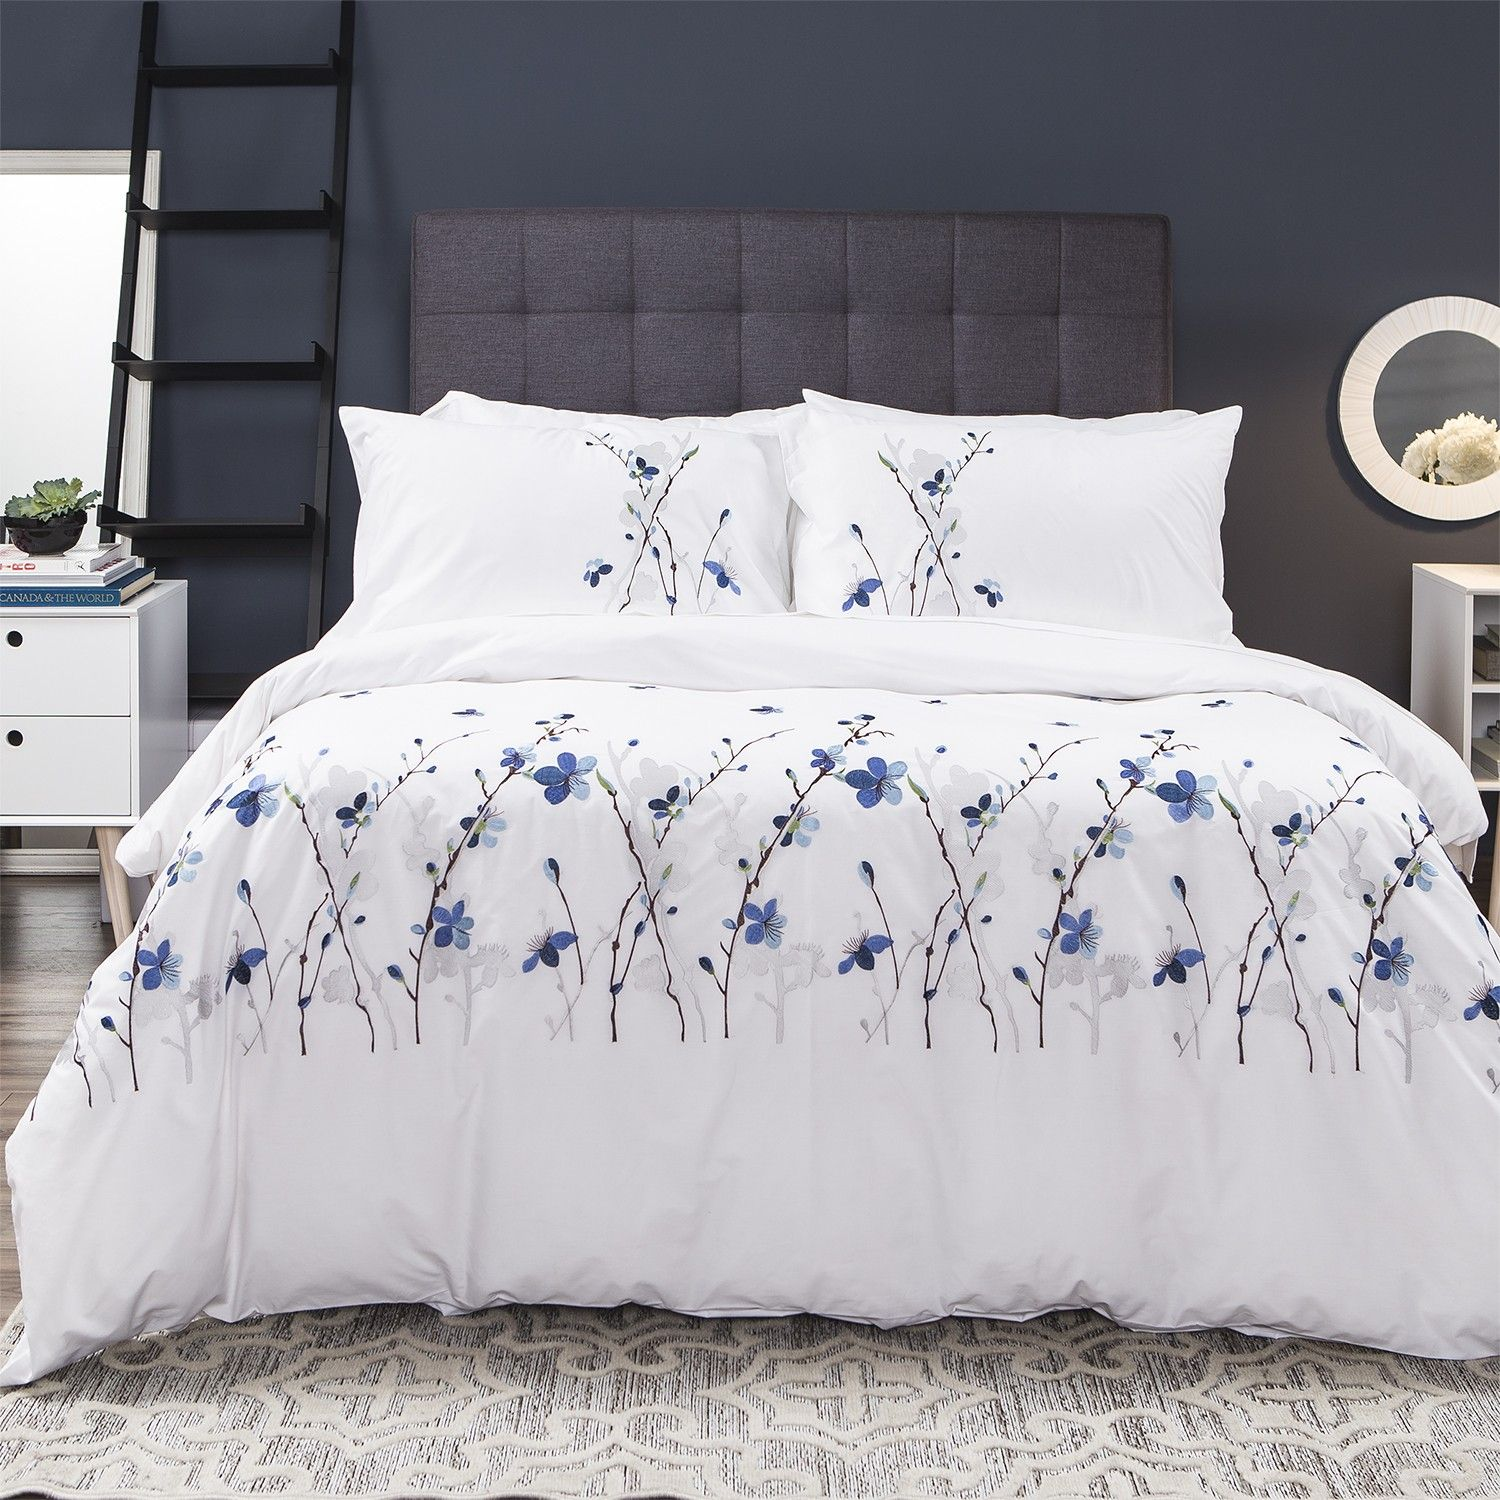 duvet cover set $80